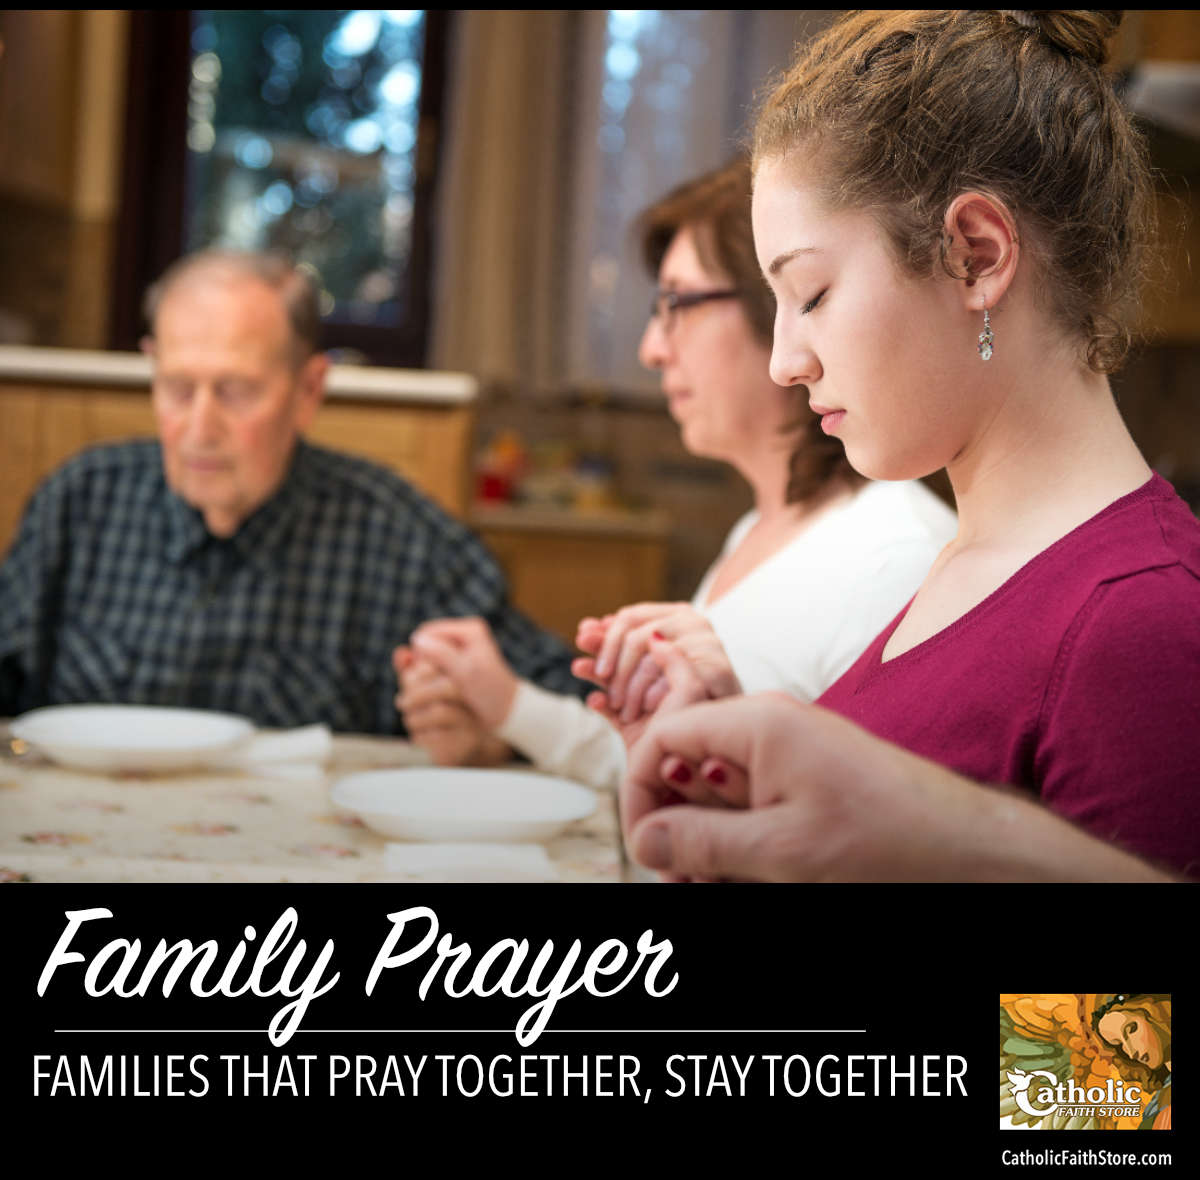 Catholic Family Prayer – Why Bother Praying As A Family?